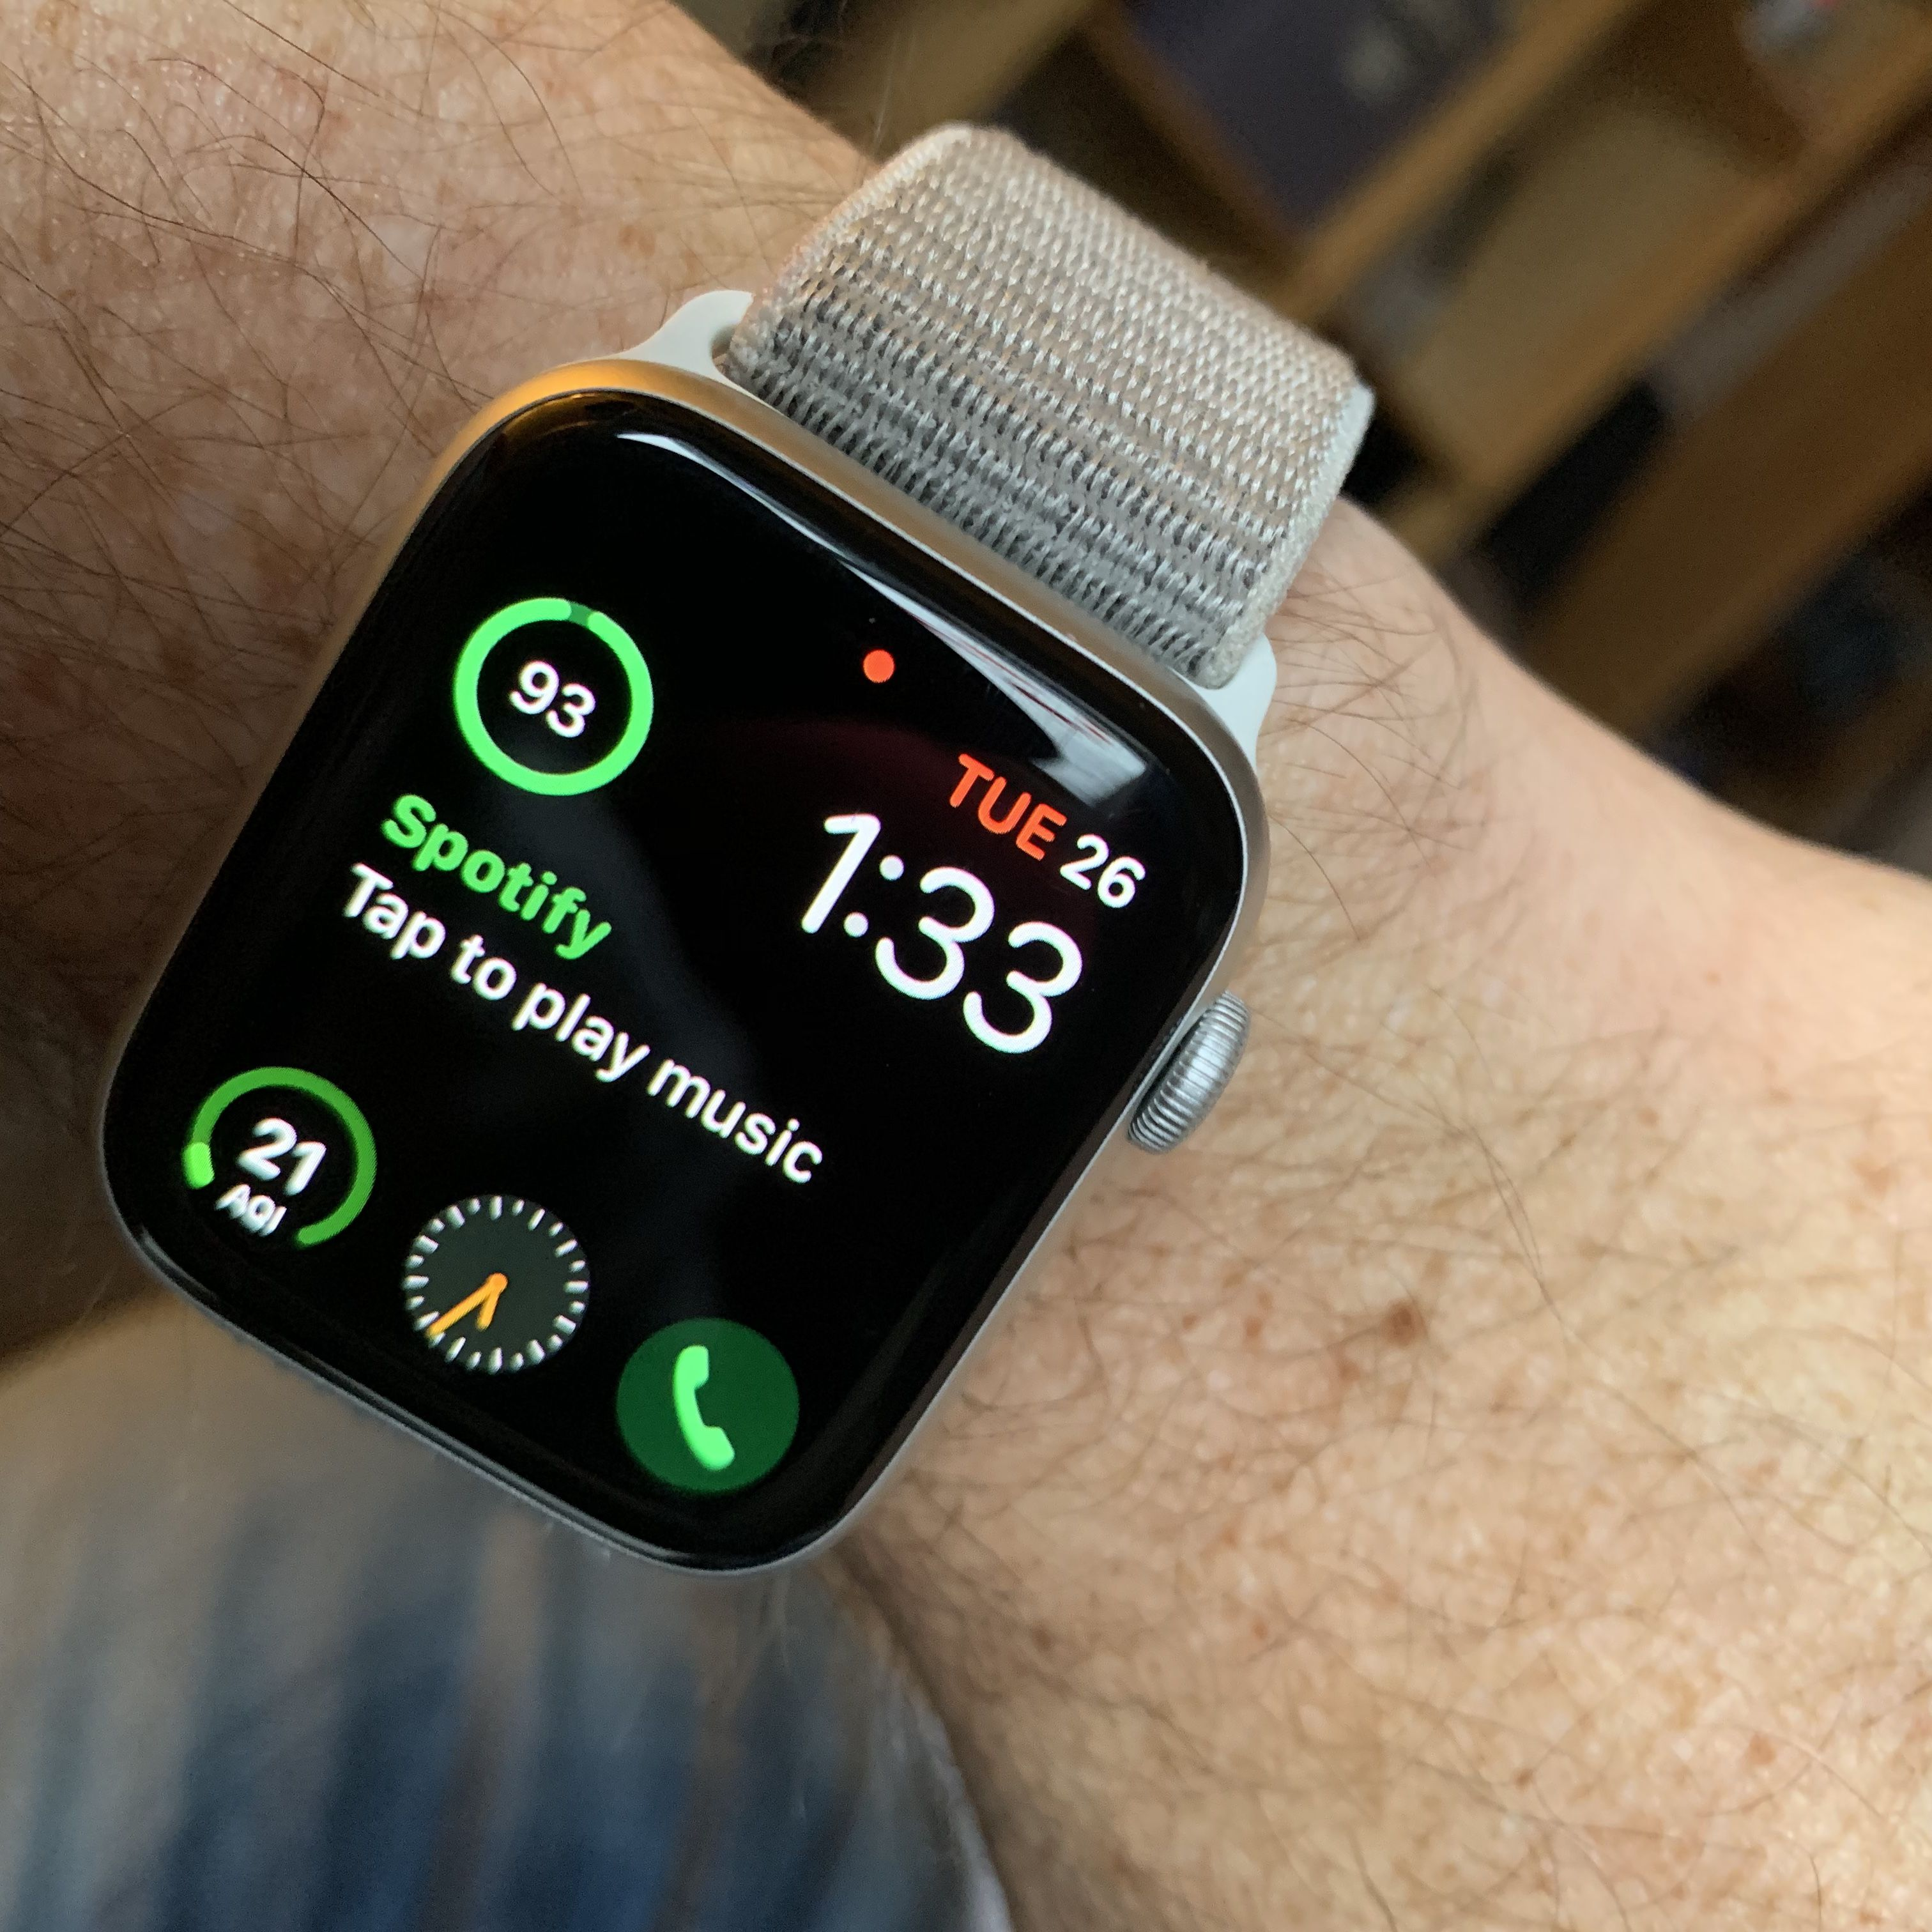 Get the Air Quality Index Complication on Your Apple Watch